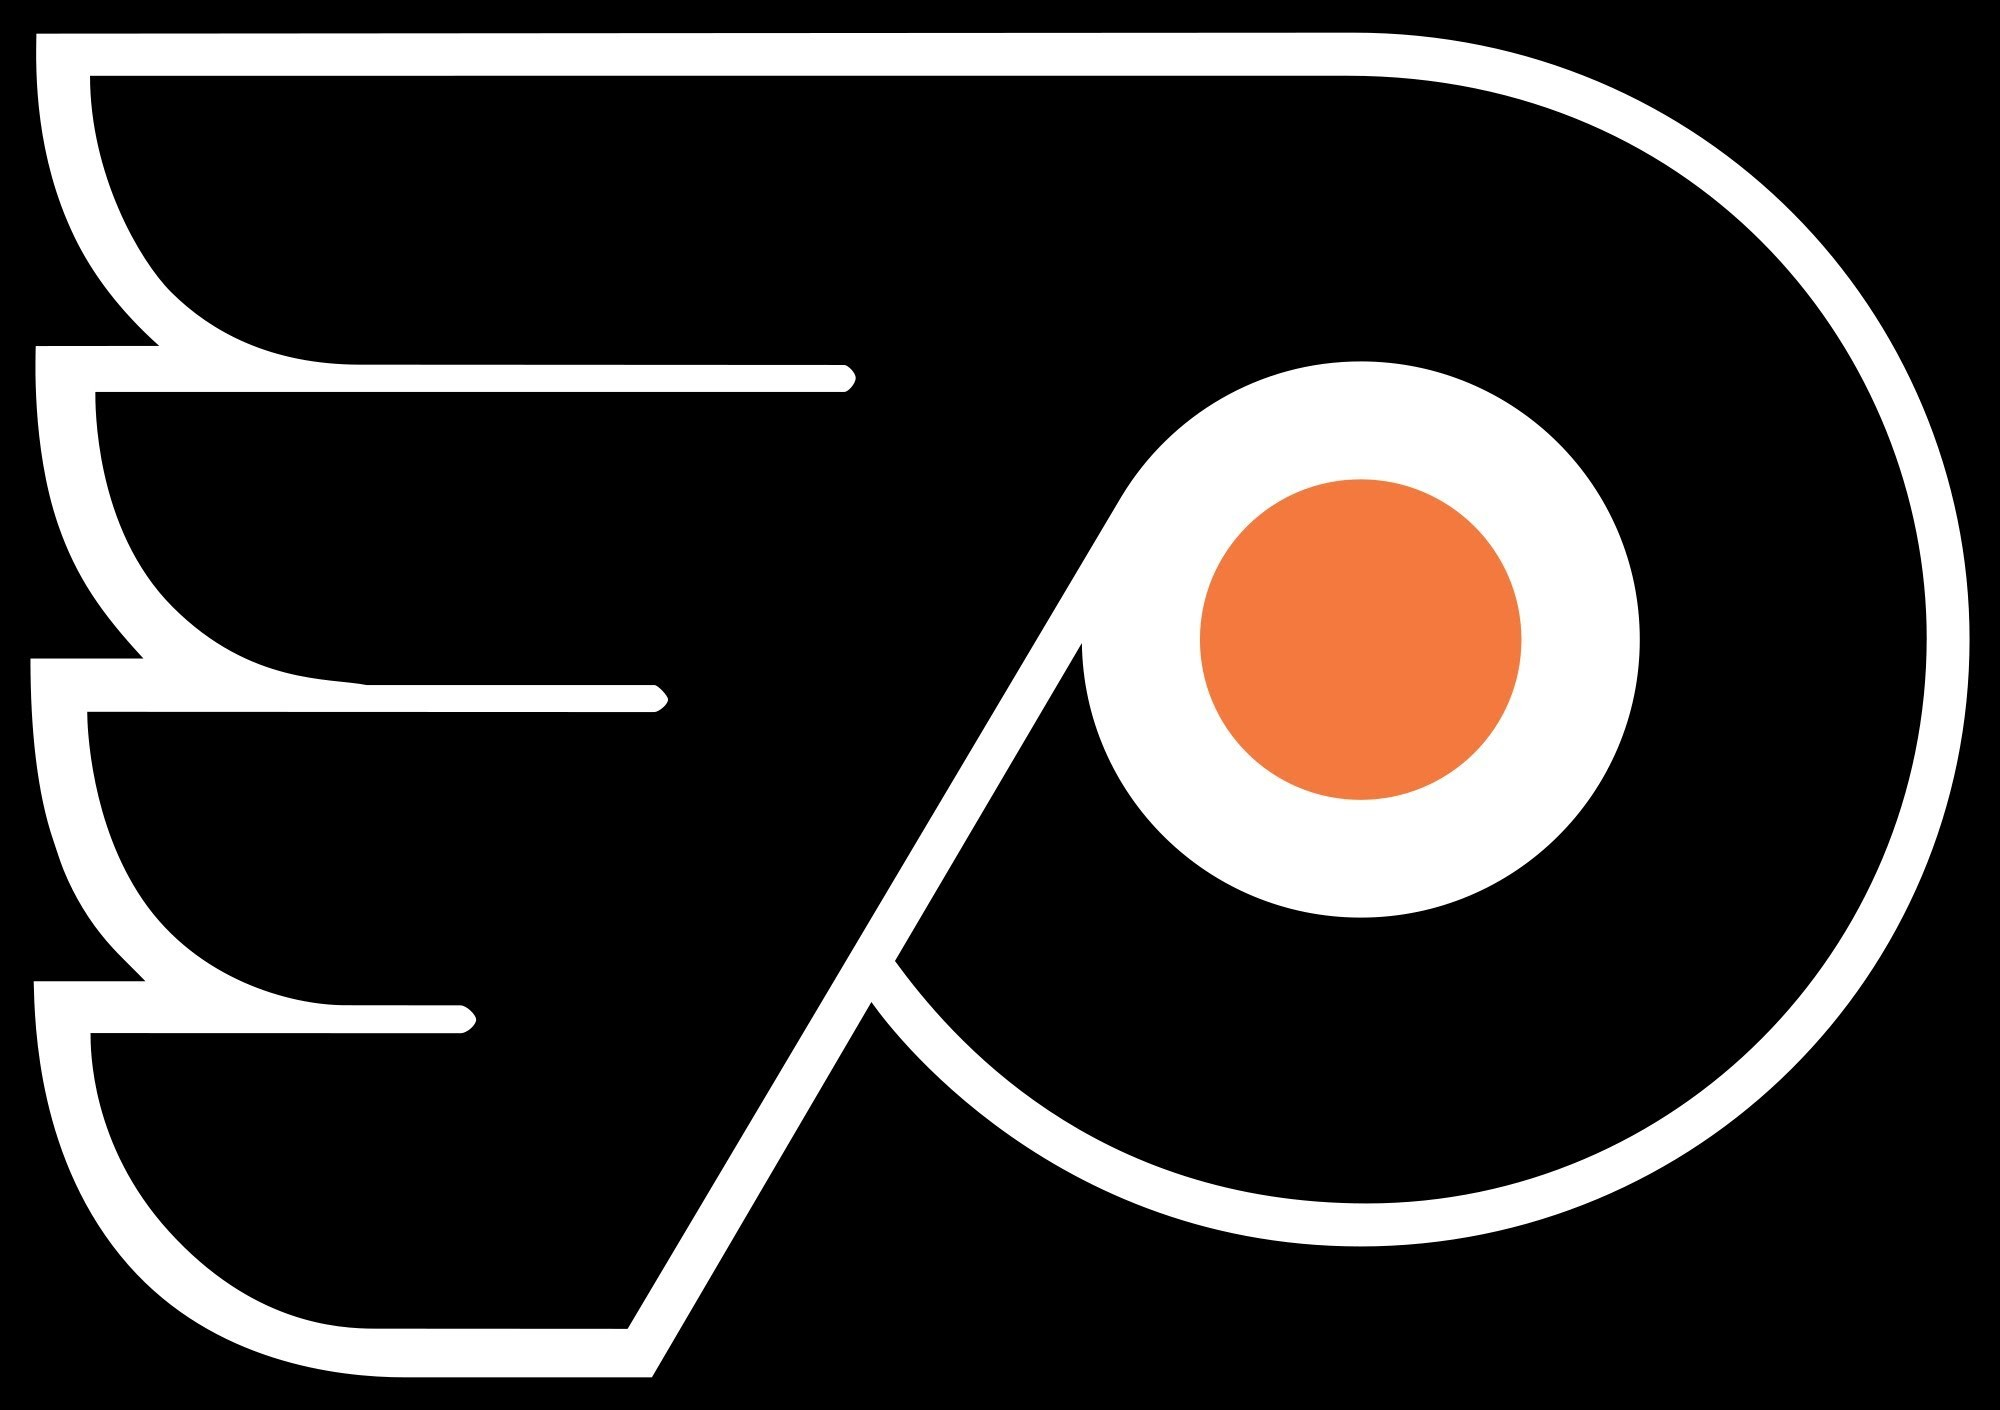 2000x1410 philadelphia flyers logo hd wallpaper 1920x1080 pictures